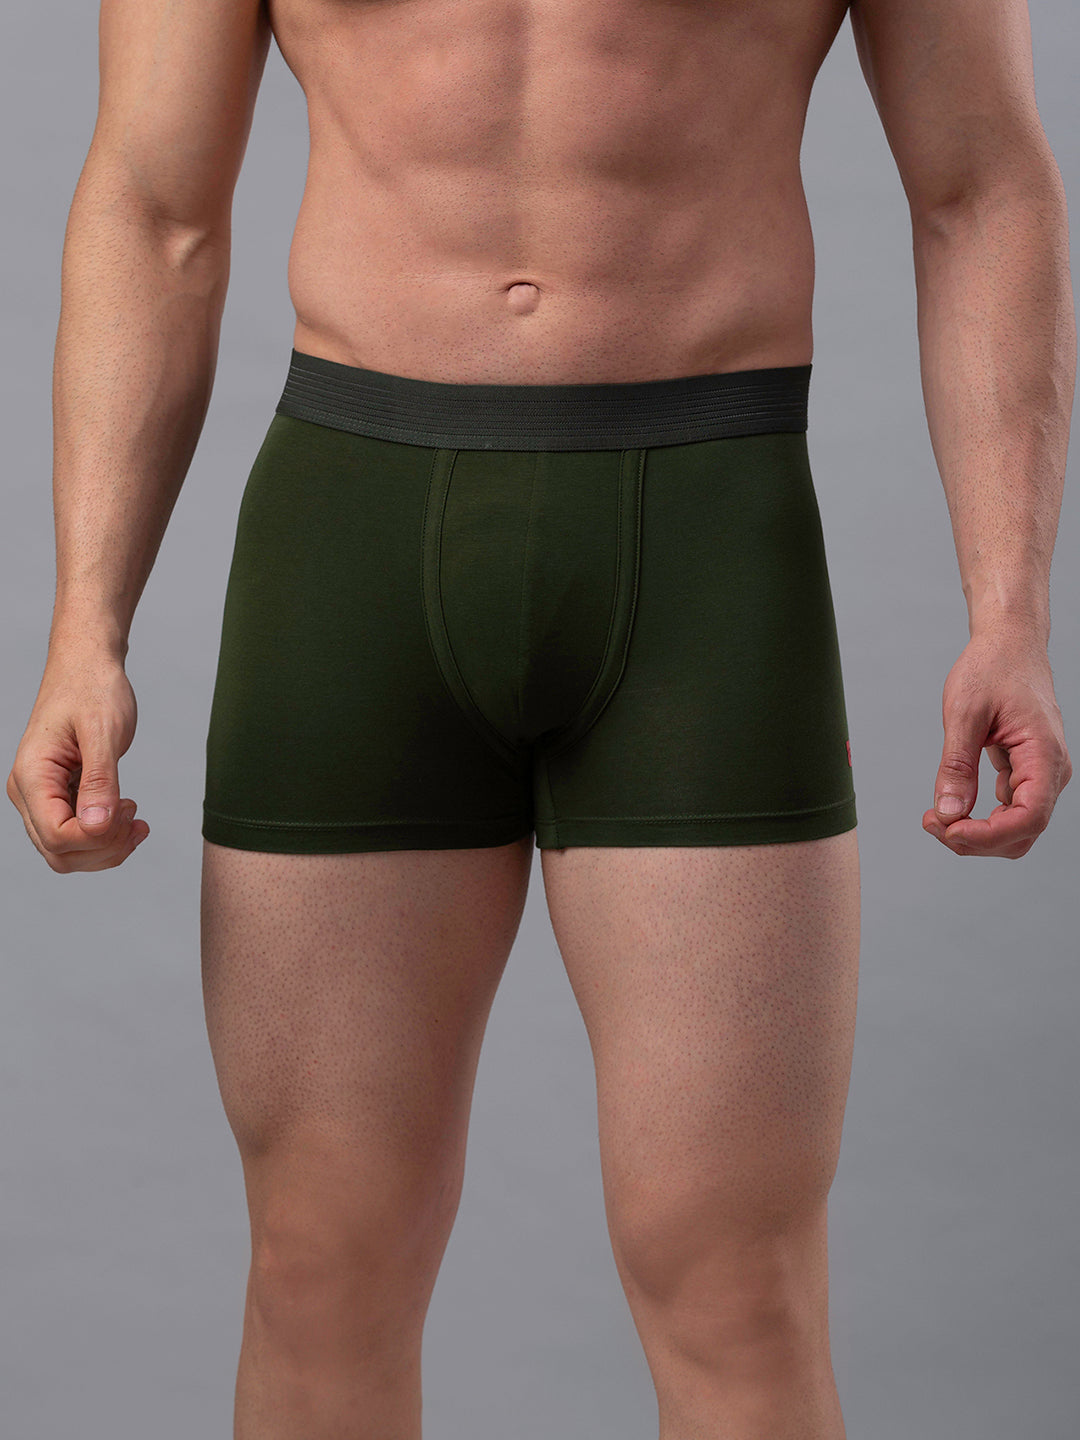 Underjeans Green Cotton Trunks - Pack of 2